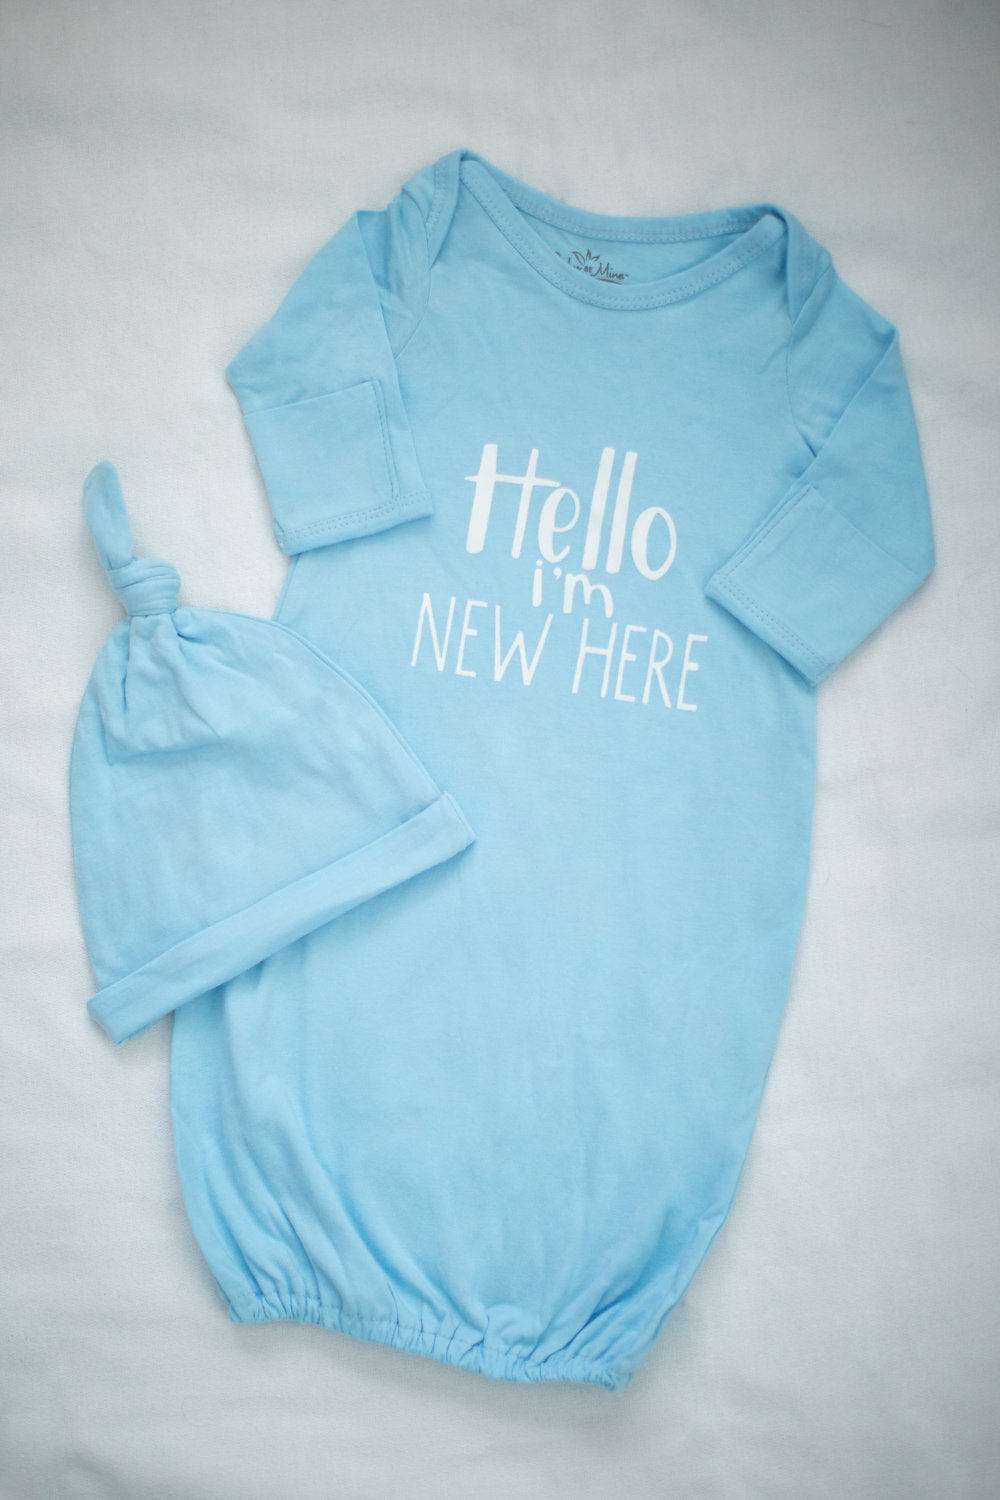 Hello I'm New Here -  Light Blue Baby Newborn Receiving Gown and Hat Set